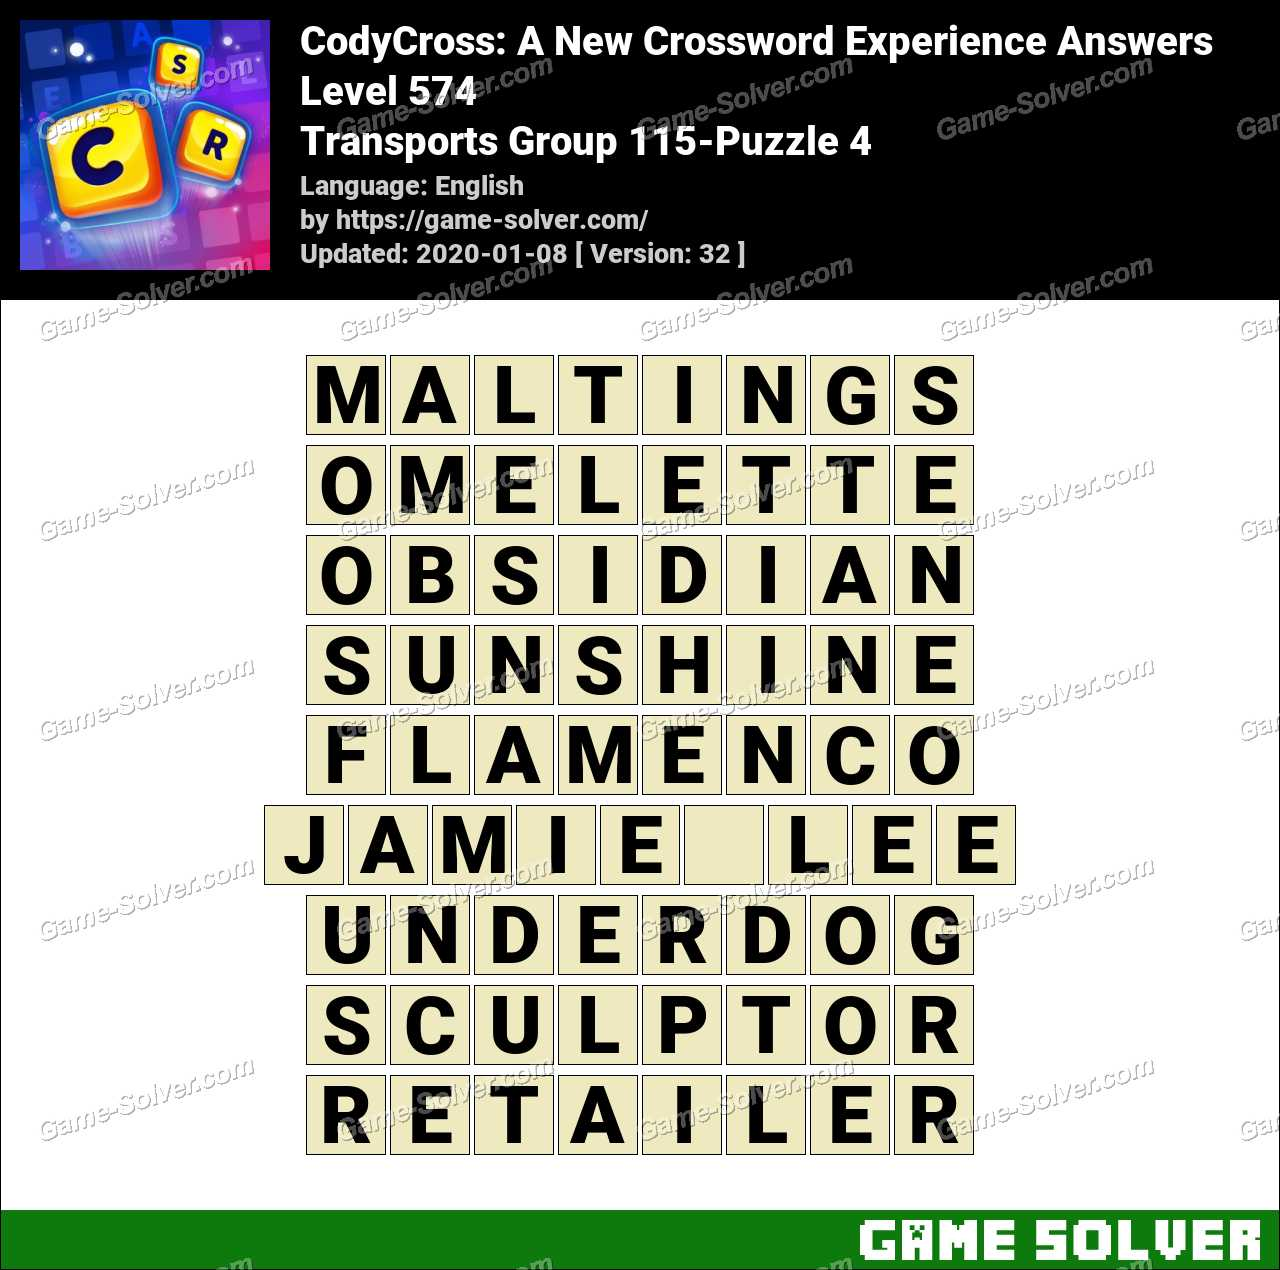 CodyCross Transports Group 115-Puzzle 4 Answers